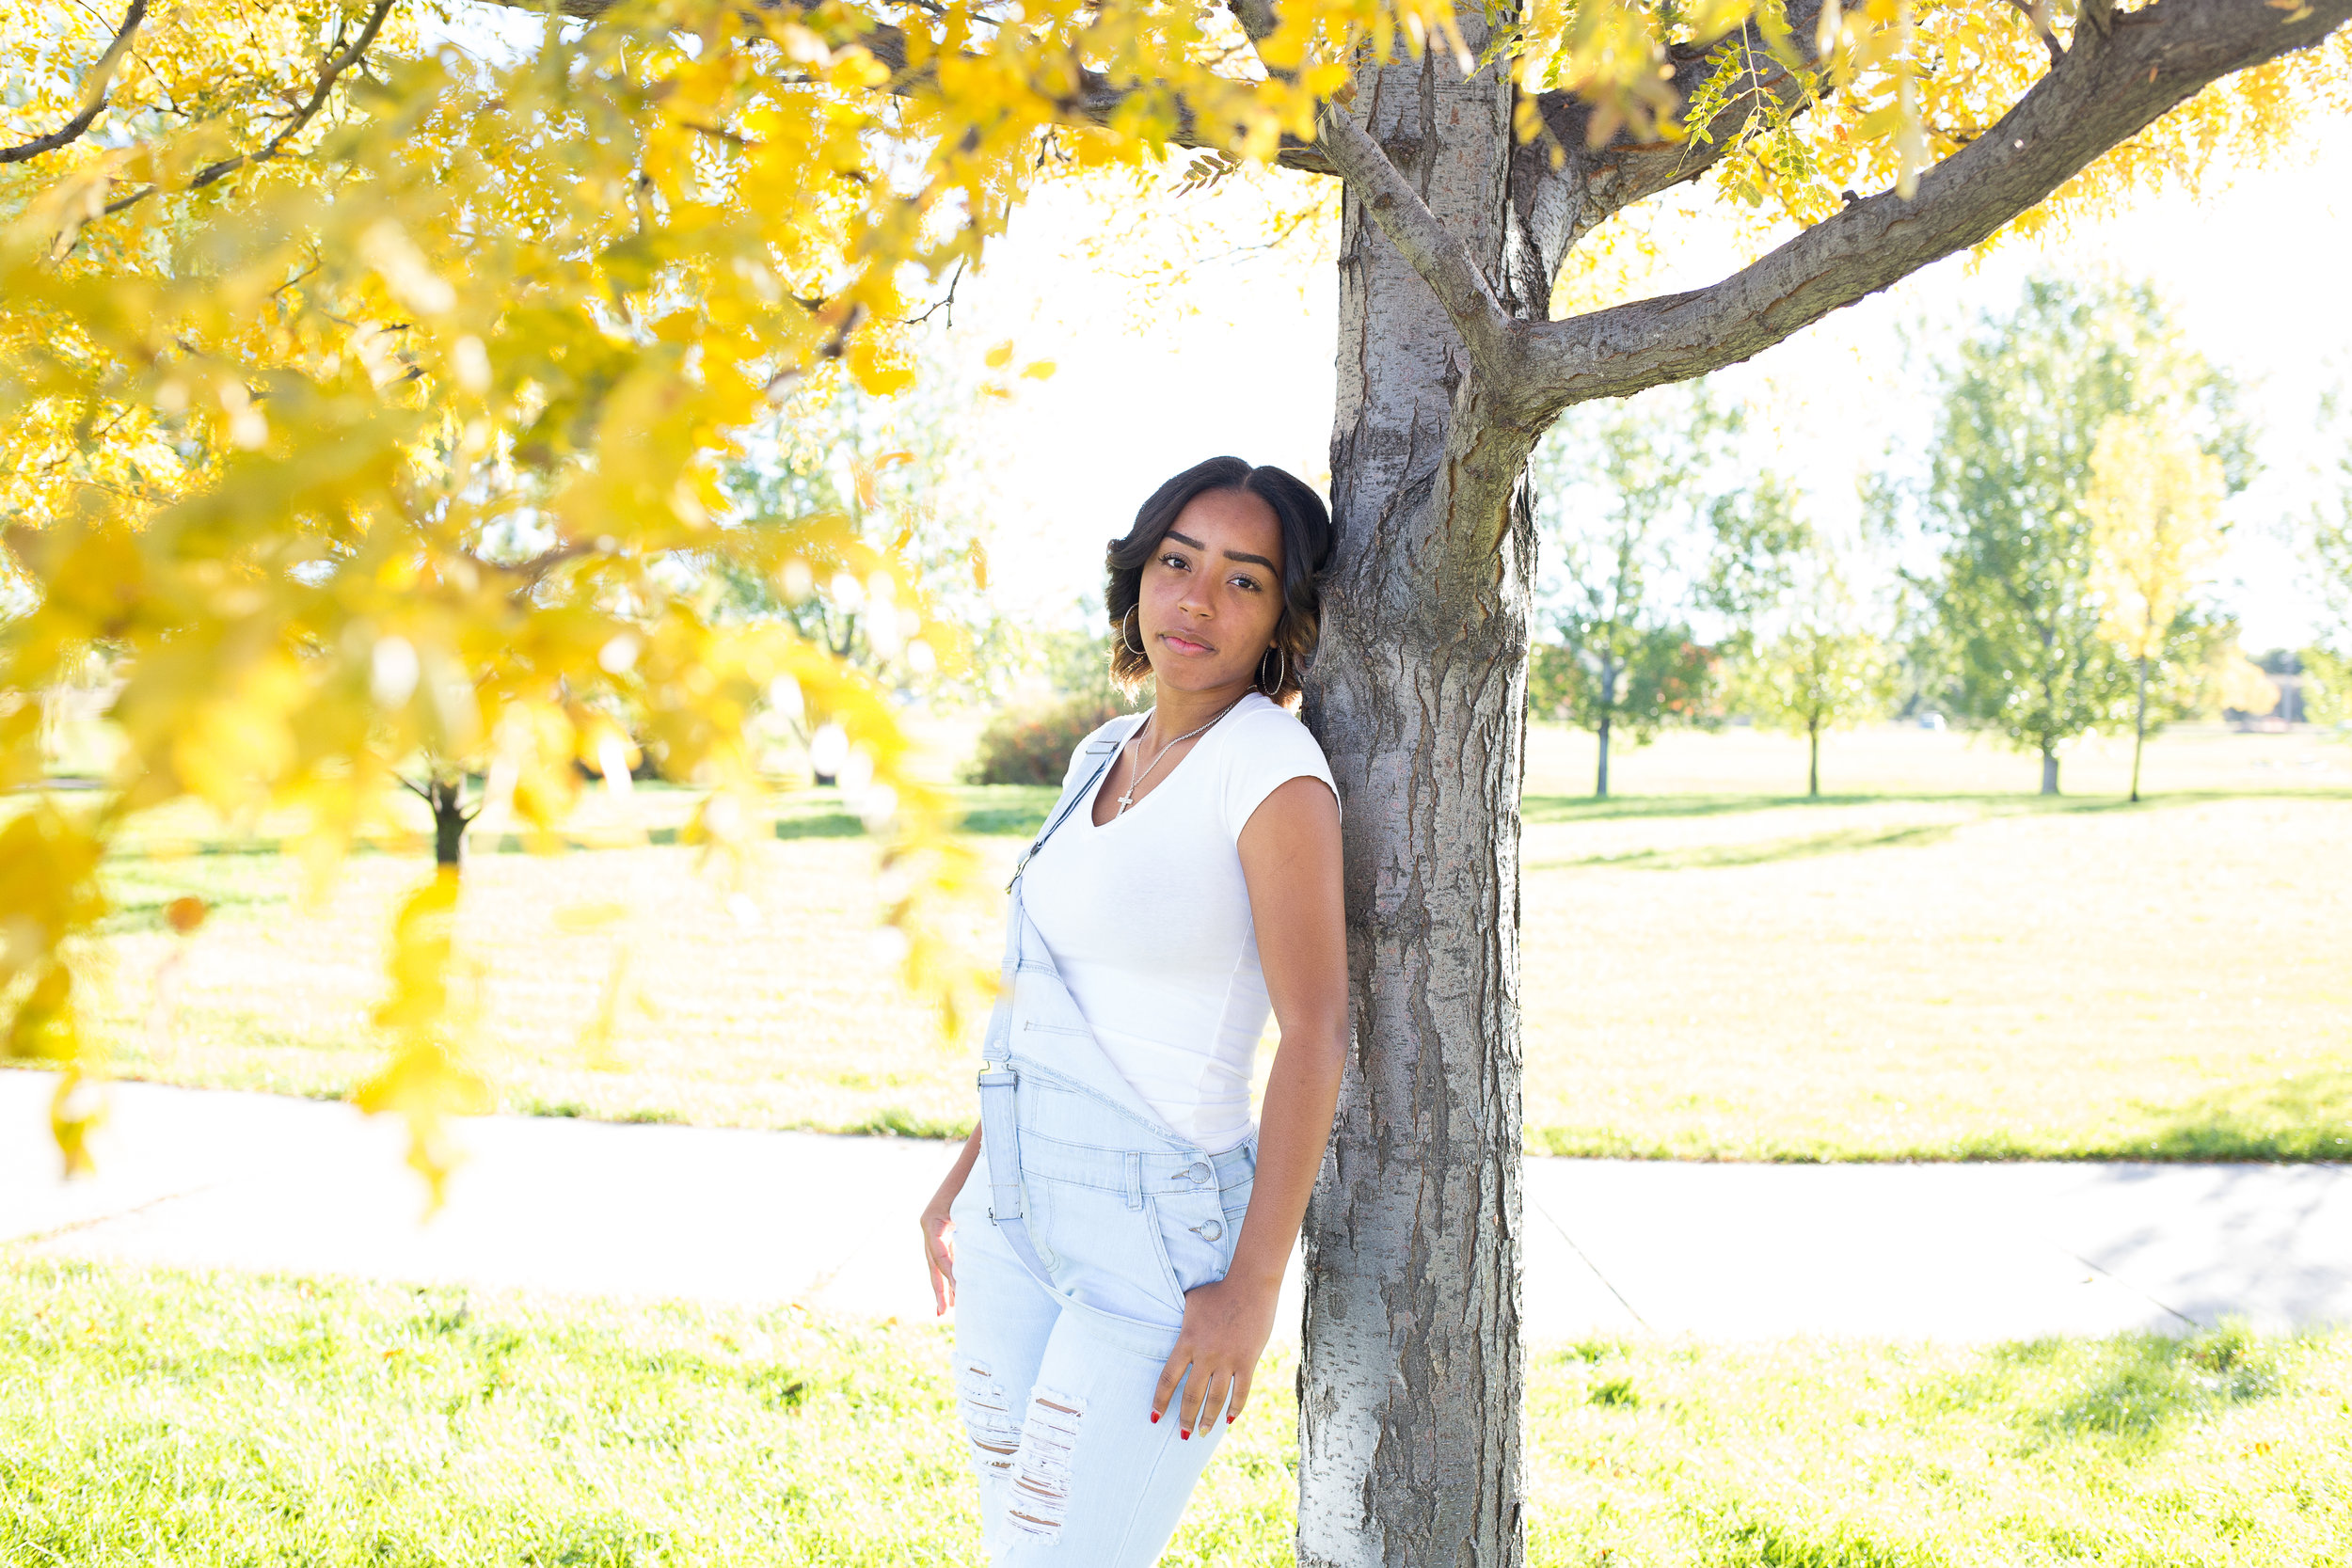 Girl leaning against tree with yellow leaves in the fall for her senior pictures at Fountain Creek Regional Park in Colorado Springs, CO. Stacy Carosa Photography